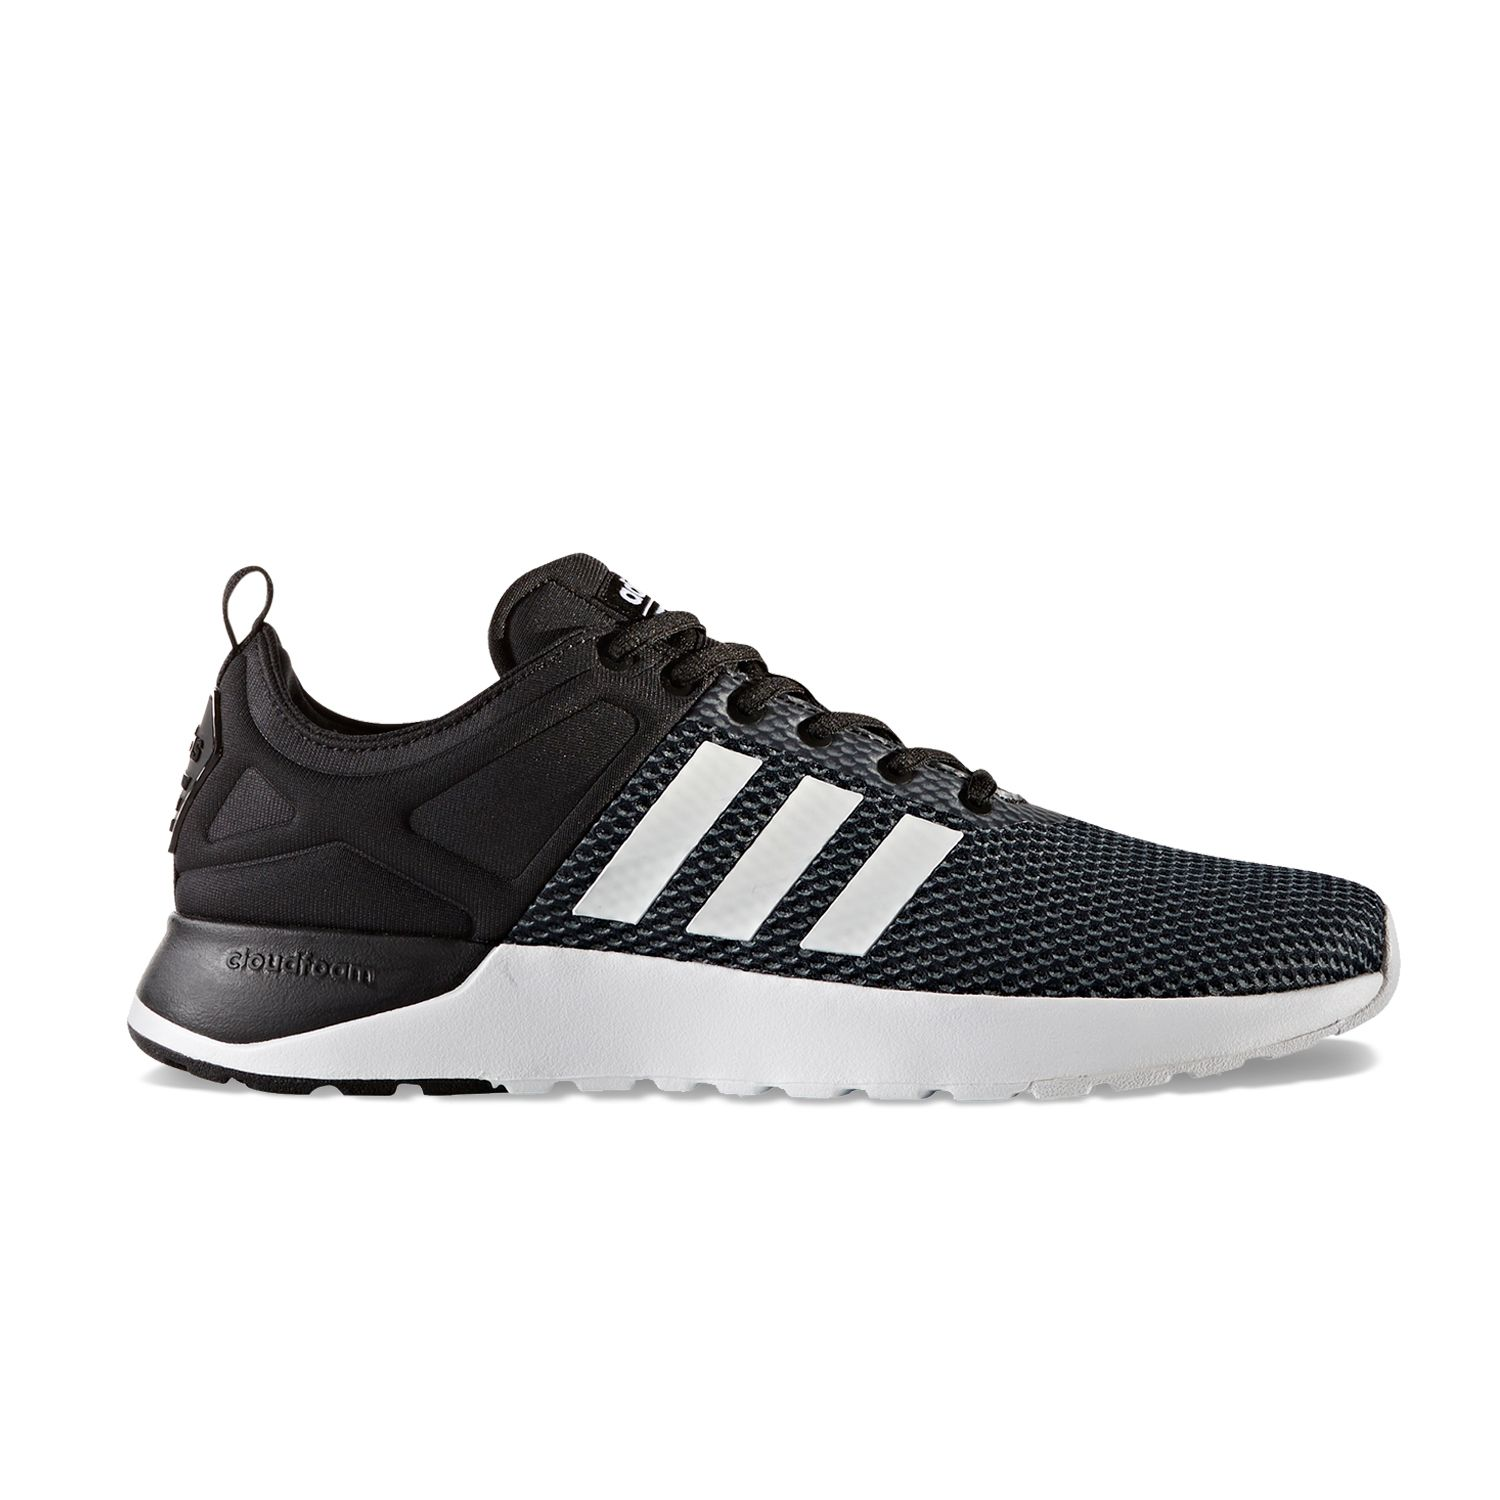 adidas NEO Cloudfoam Super Racer Men\u0027s Shoes. Royal Gray Black